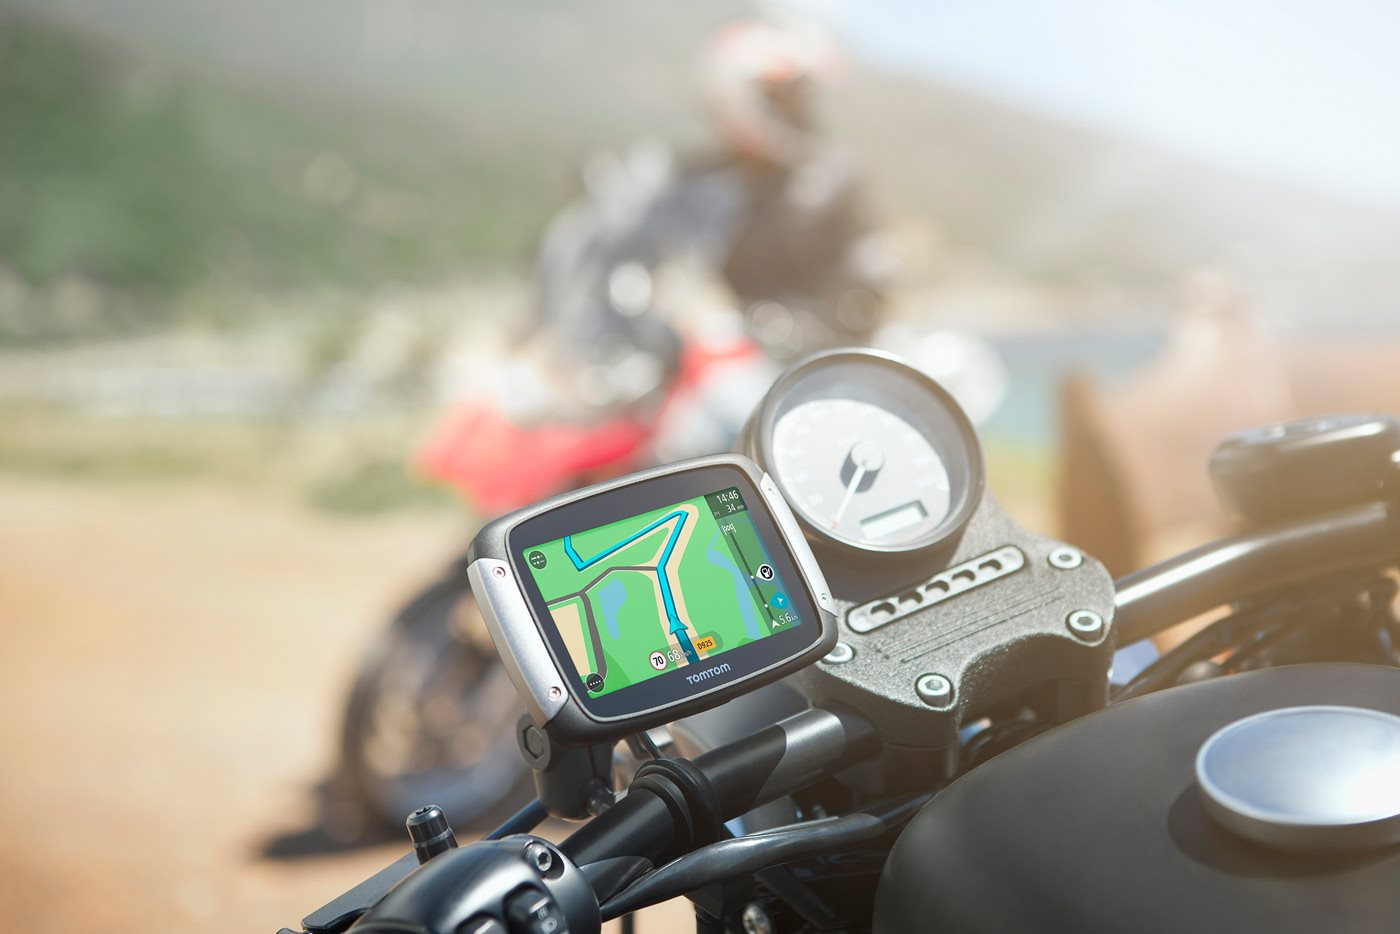 tomtom rider testen und gewinnen motorrad news. Black Bedroom Furniture Sets. Home Design Ideas